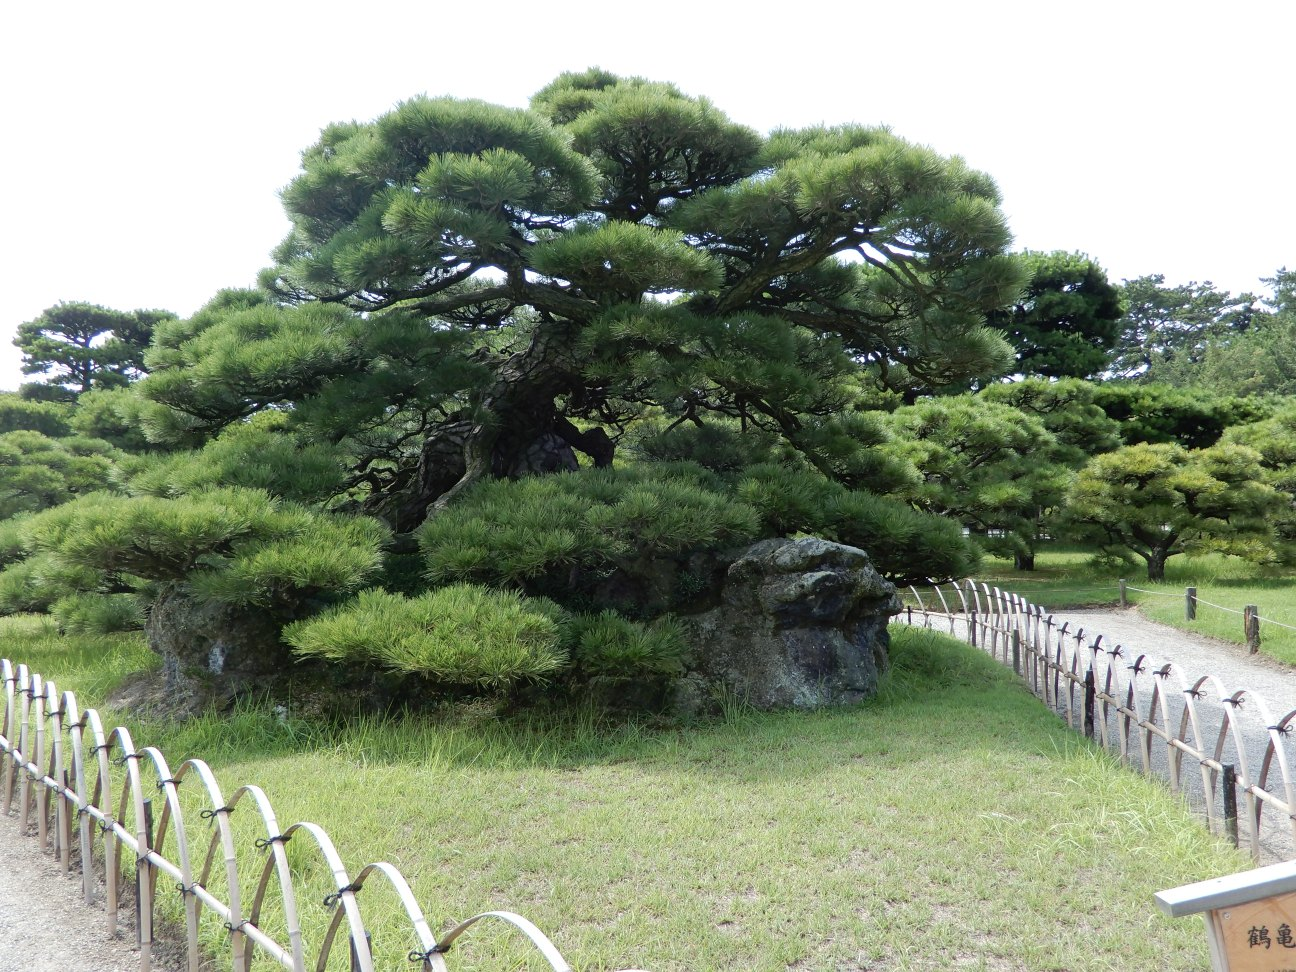 Tsurukame-Matsu Pine Tree. A black pine resting on 110 rocks. This signifies a crane resting on the back of a giant turtle.